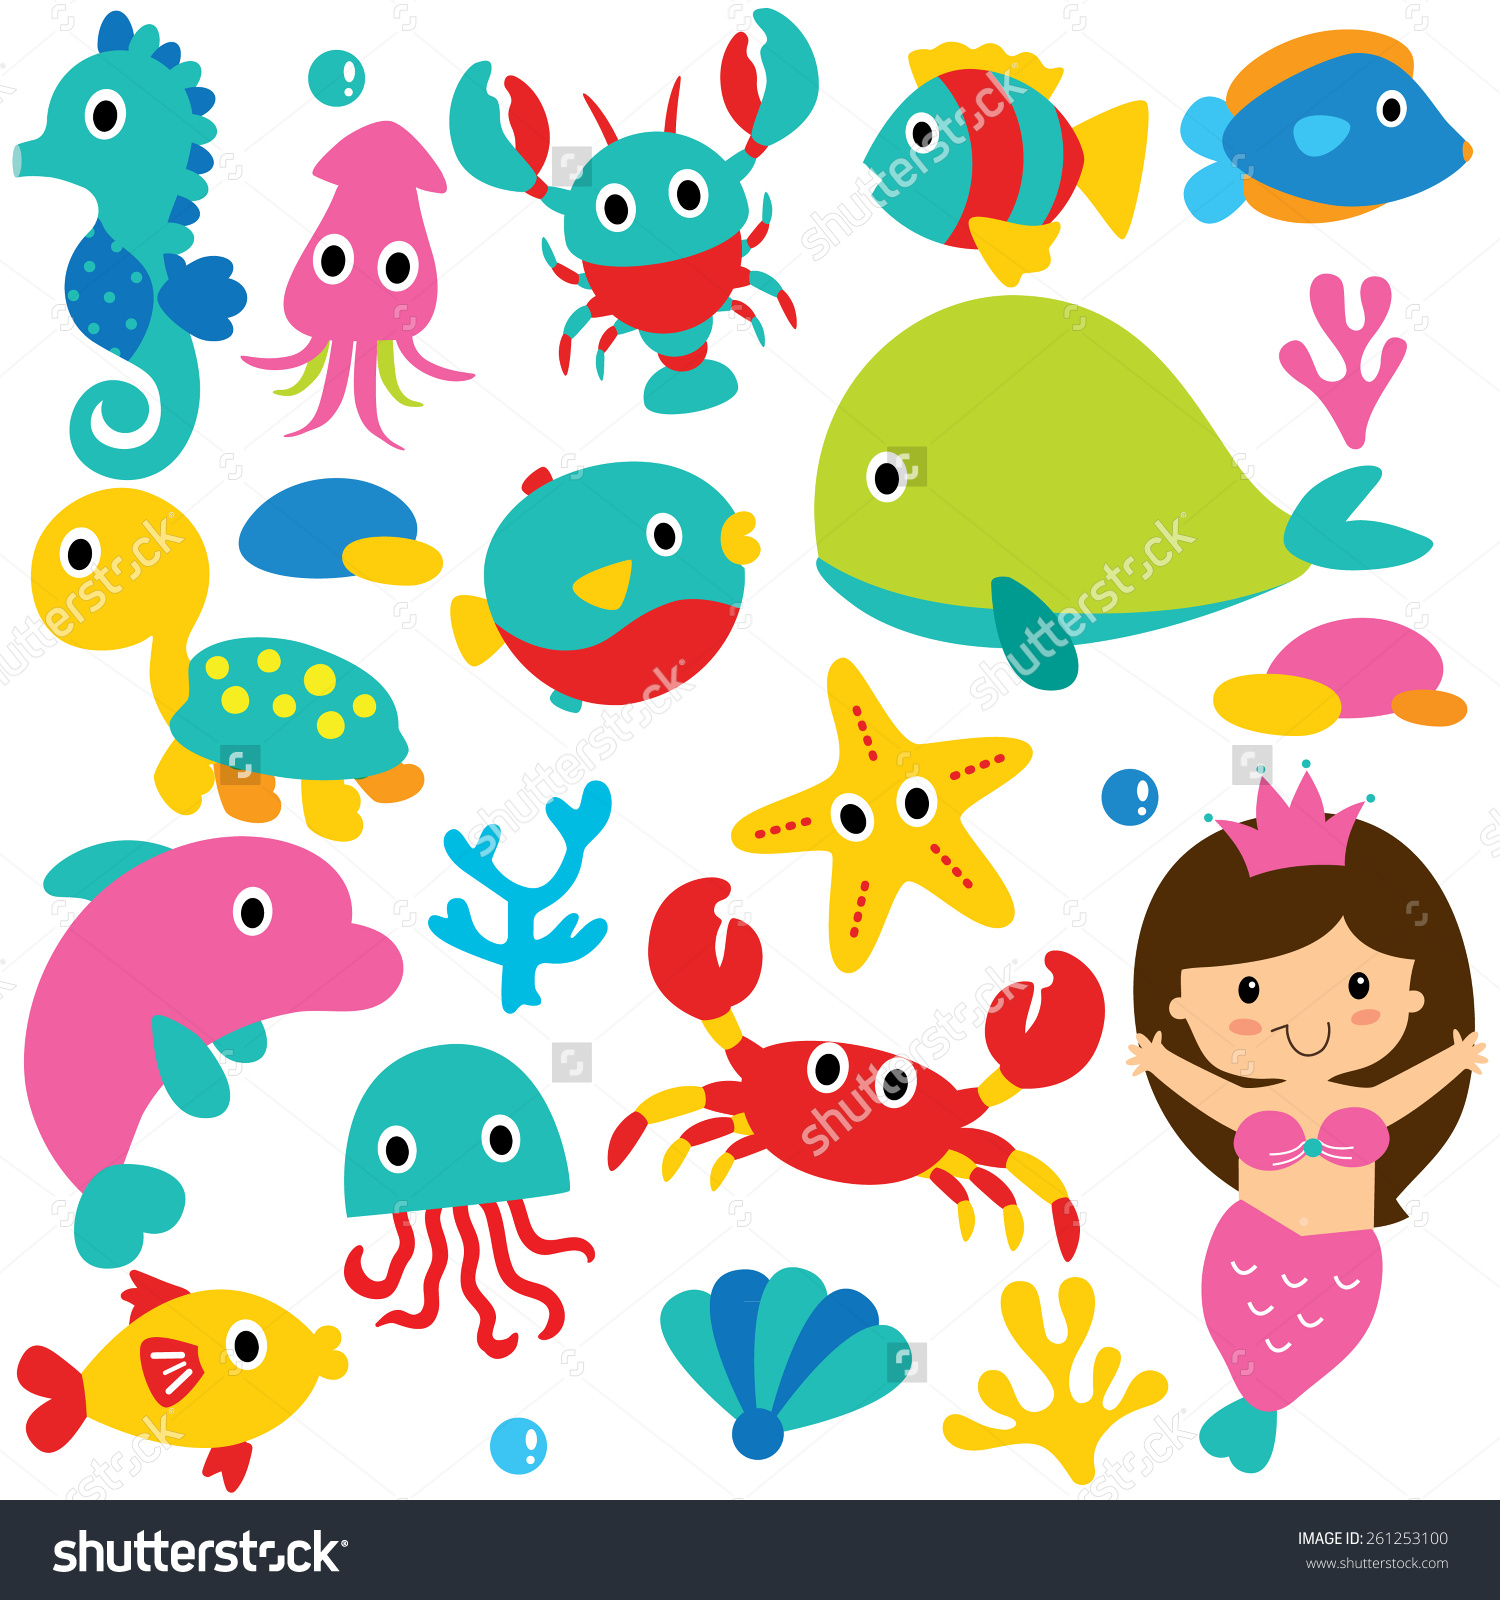 Cute sea animal clipart.